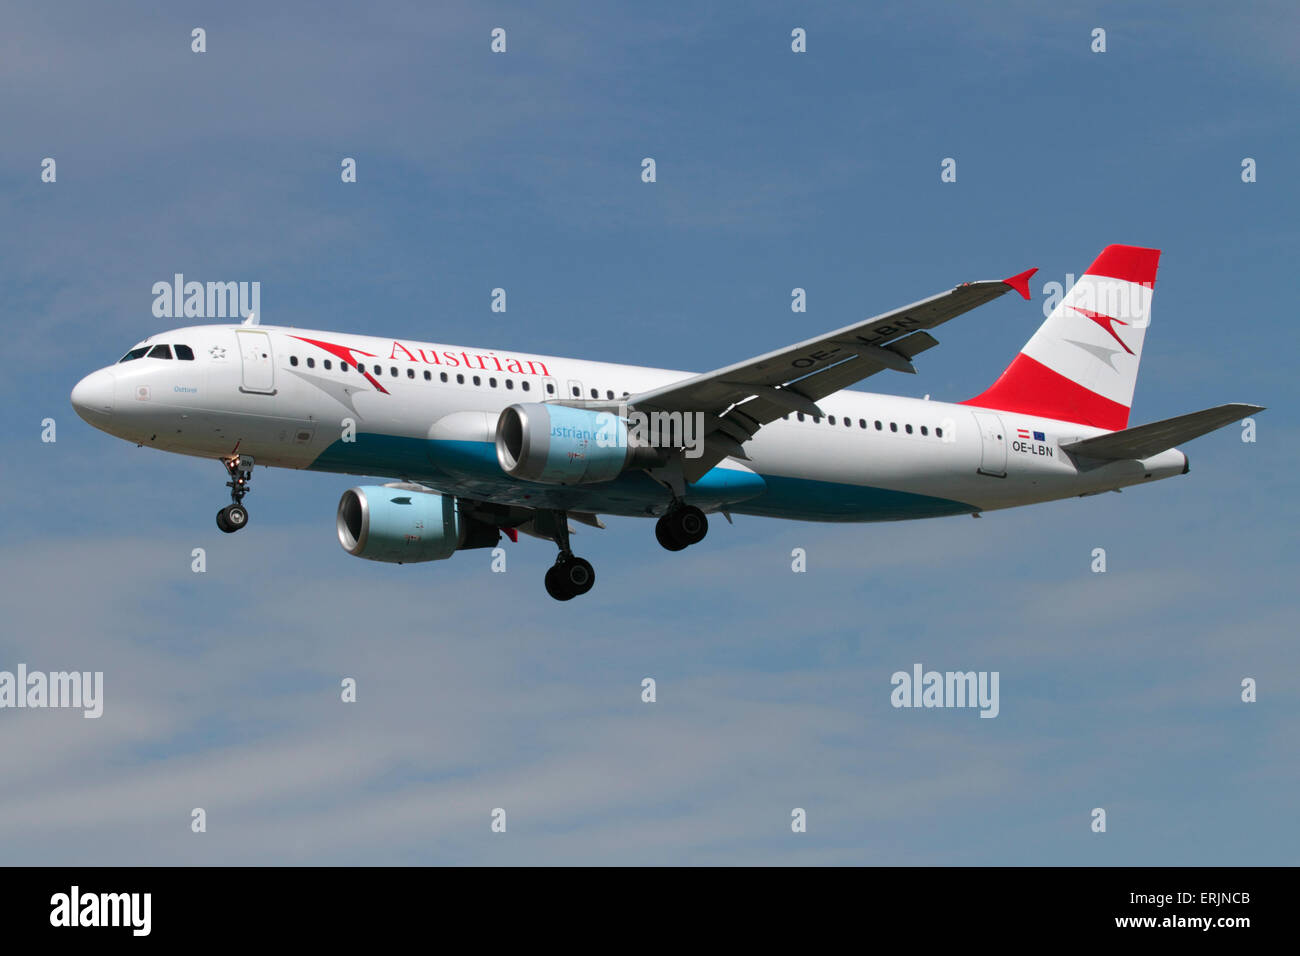 Austrian Airlines Airbus A320 airliner on approach - Stock Image